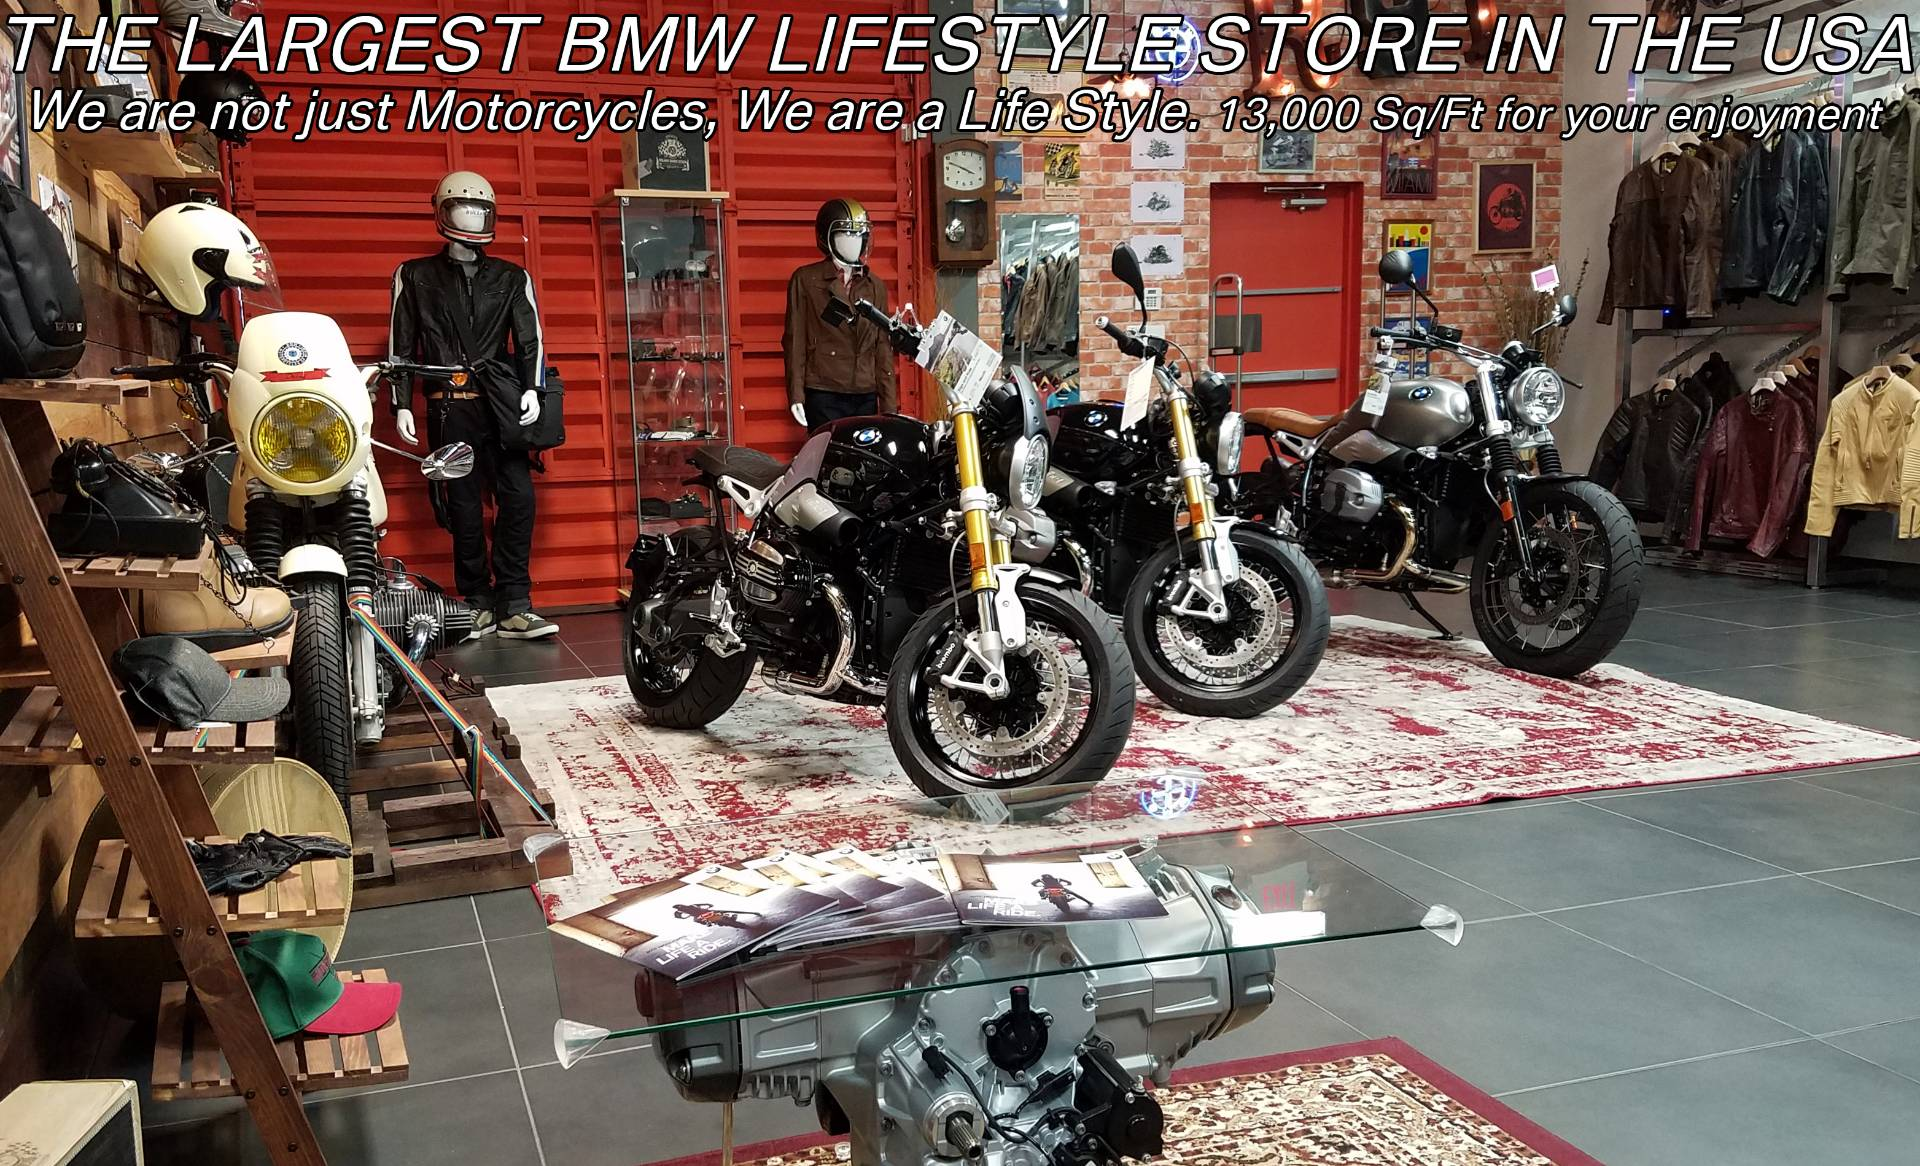 Used 2016 BMW S 1000 XR For Sale, Pre Owned BMW S 1000XR For Sale, Pre-Owned BMW Motorcycle S1000XR, BMW Motorcycle, S 1000 XR, DUAL, BMW - Photo 28